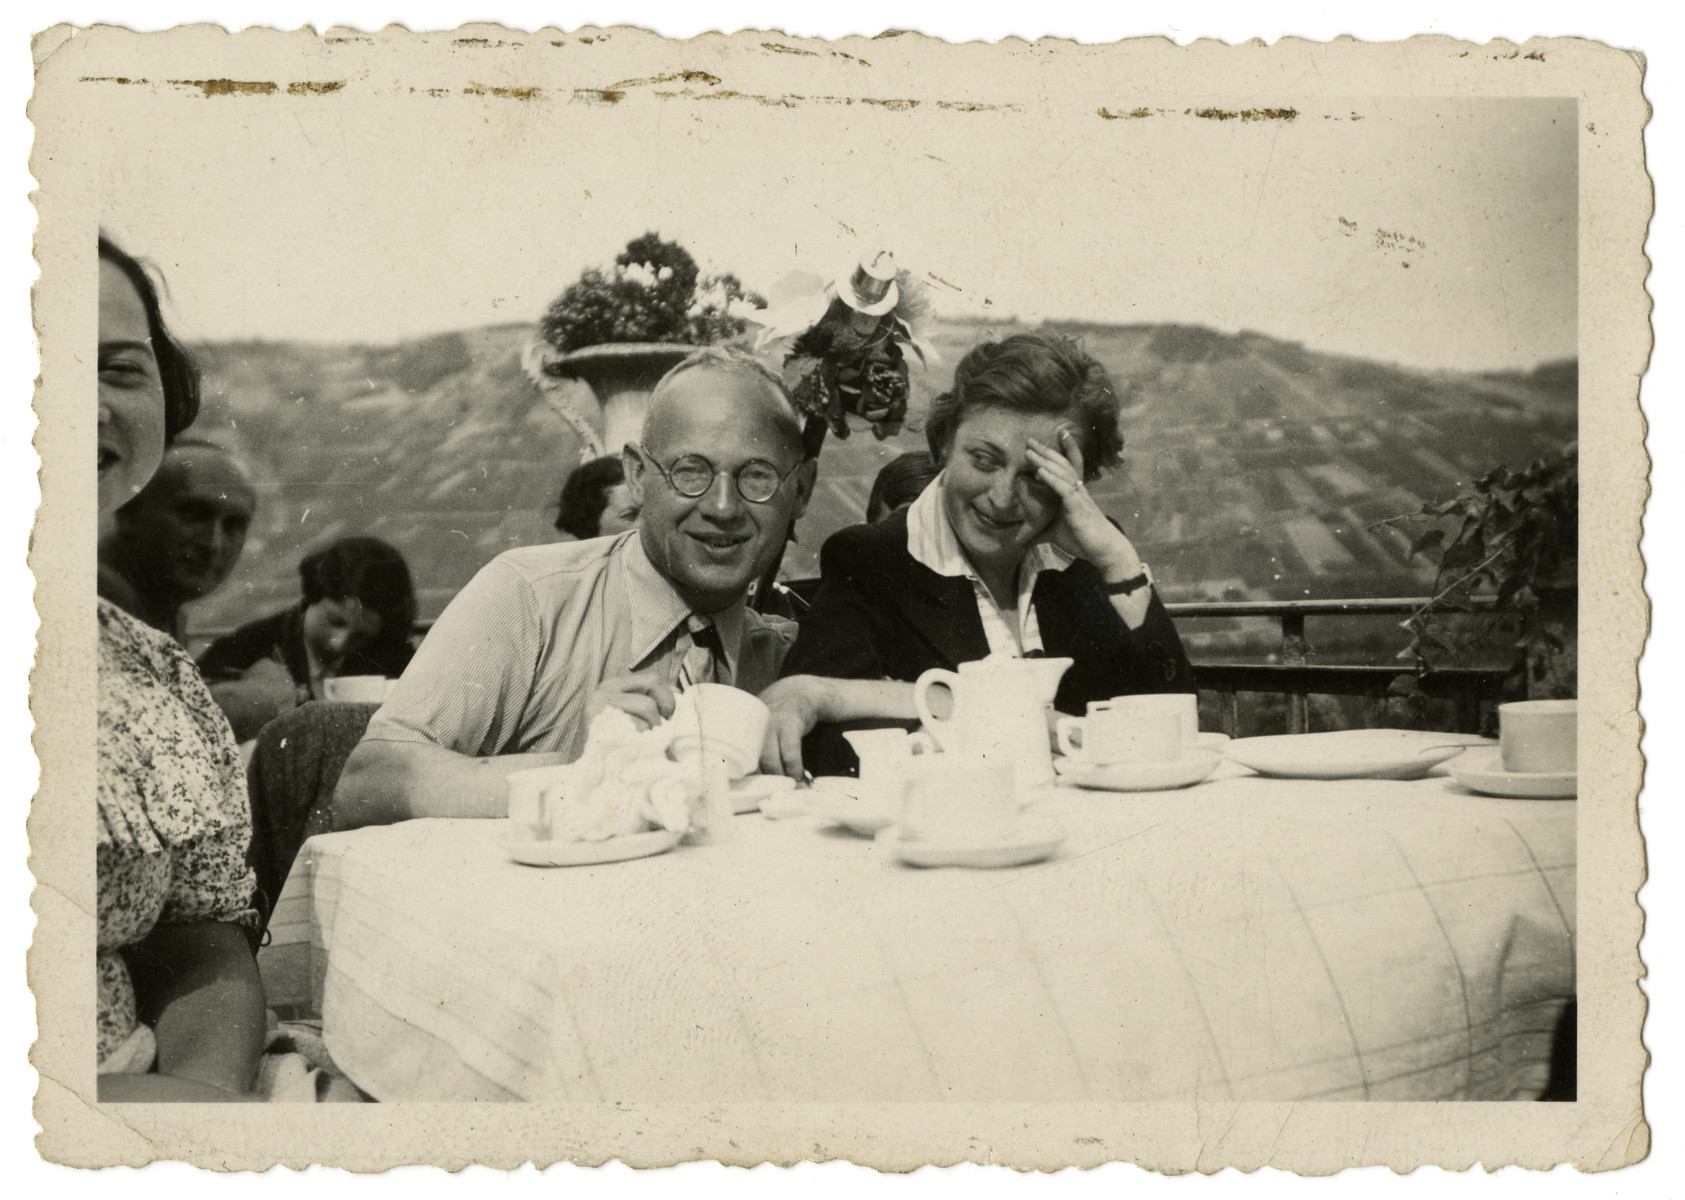 Sebald Mueller sits at a table with an unidentified family friend while vacationing in the mountains.